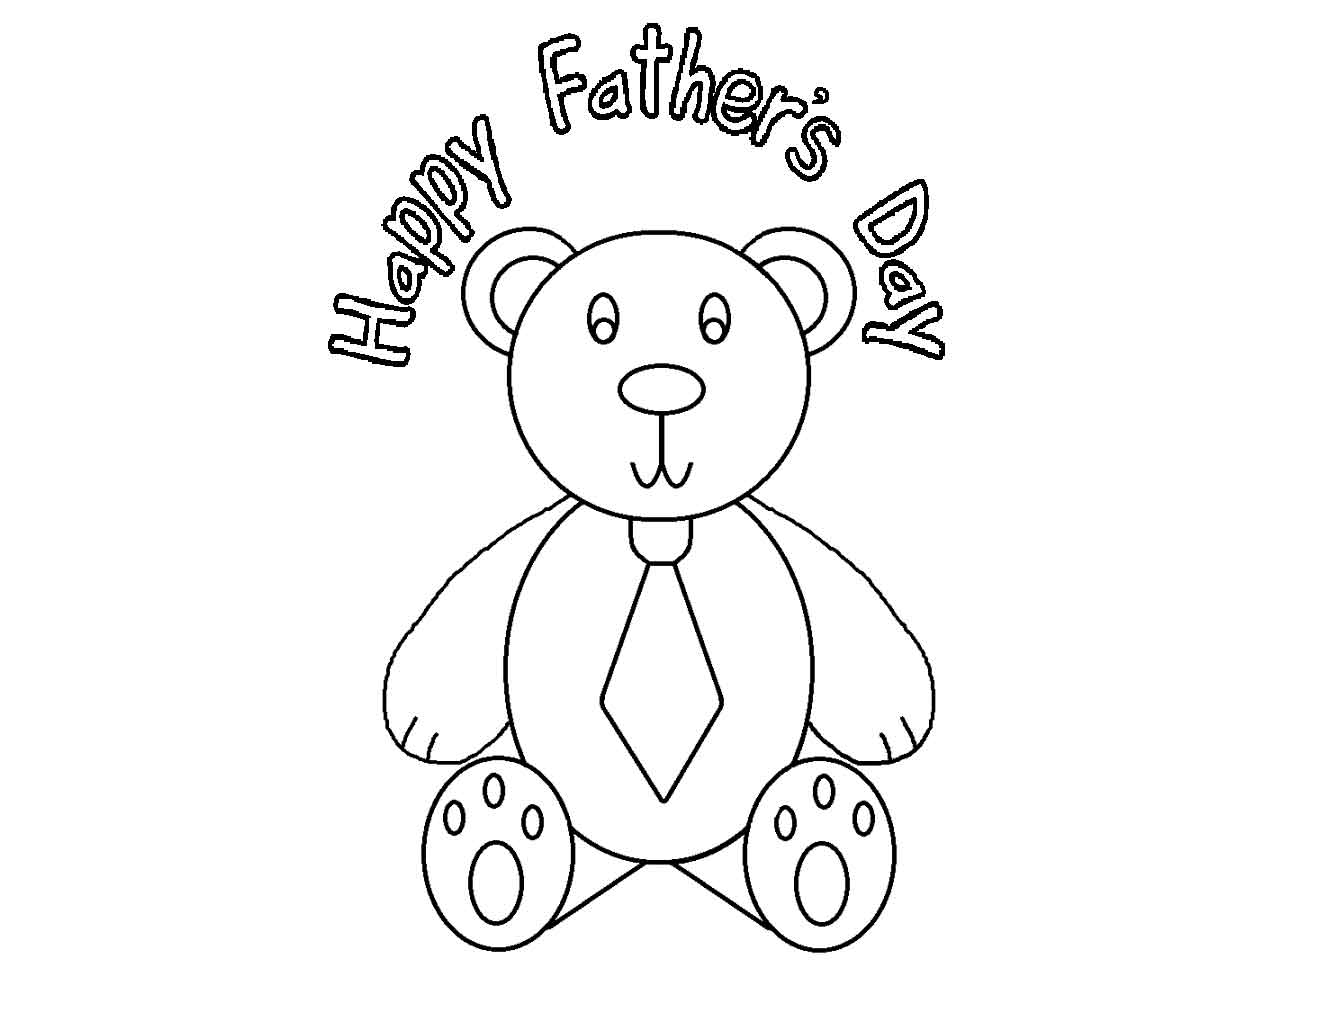 fathers day cards coloring pages fathers day coloring pages